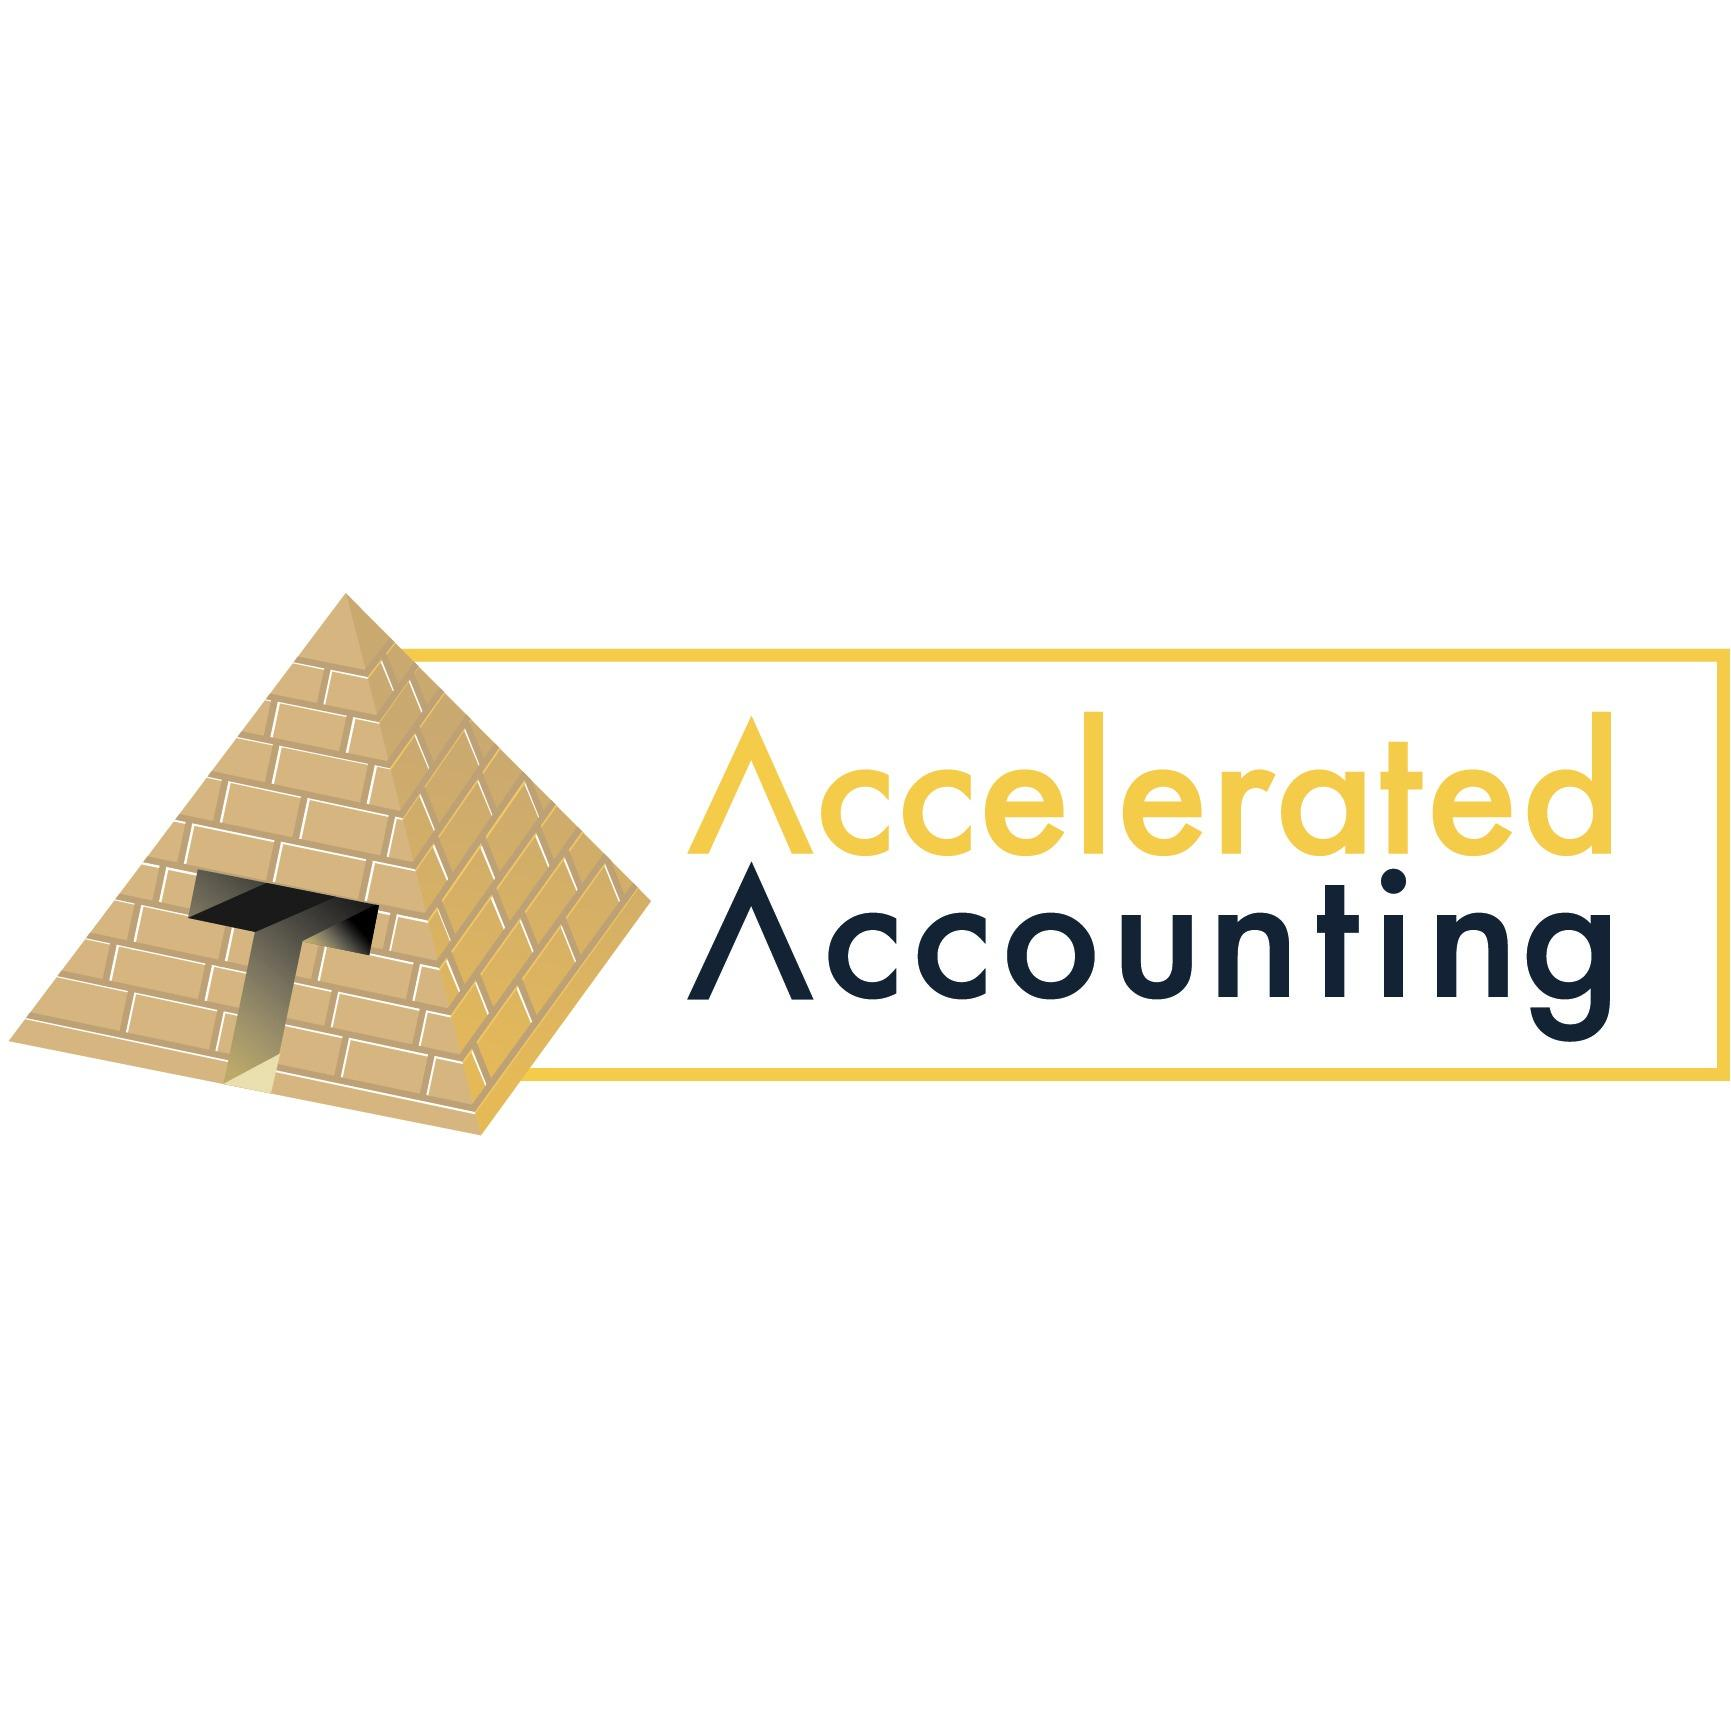 Accelerated Accounting